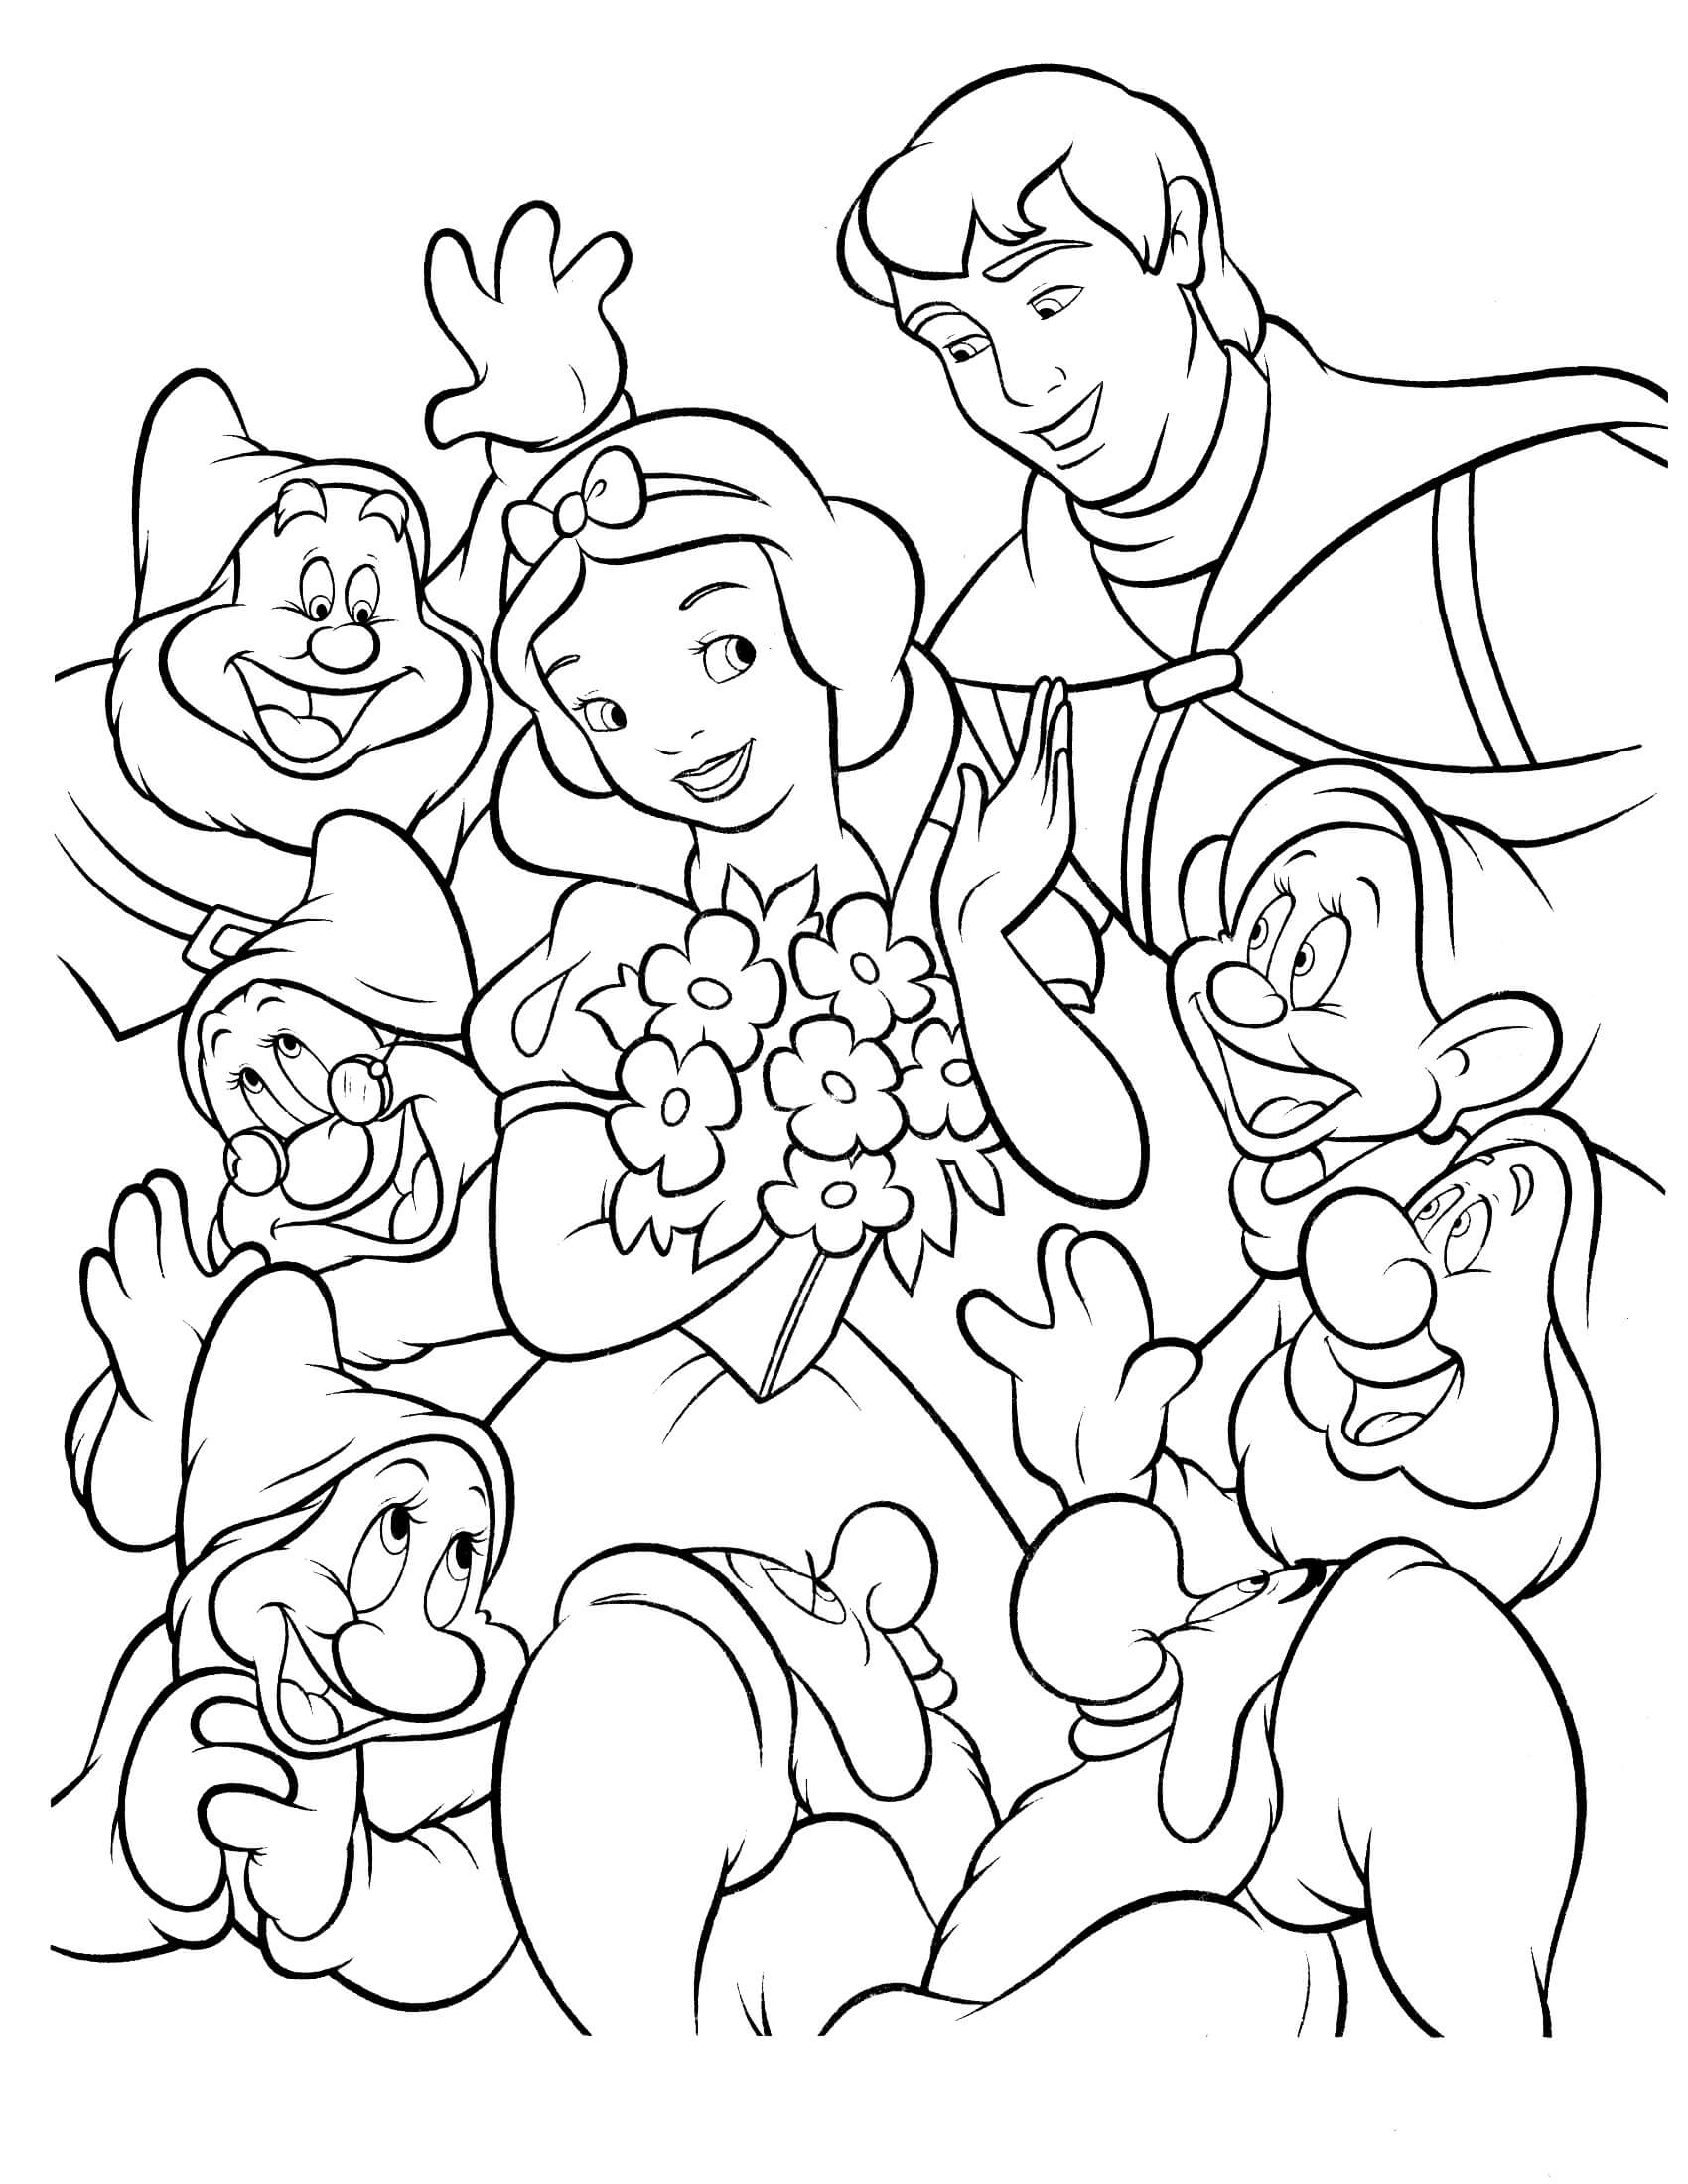 20 Mary Poppins Coloring Pages Pictures | FREE COLORING PAGES